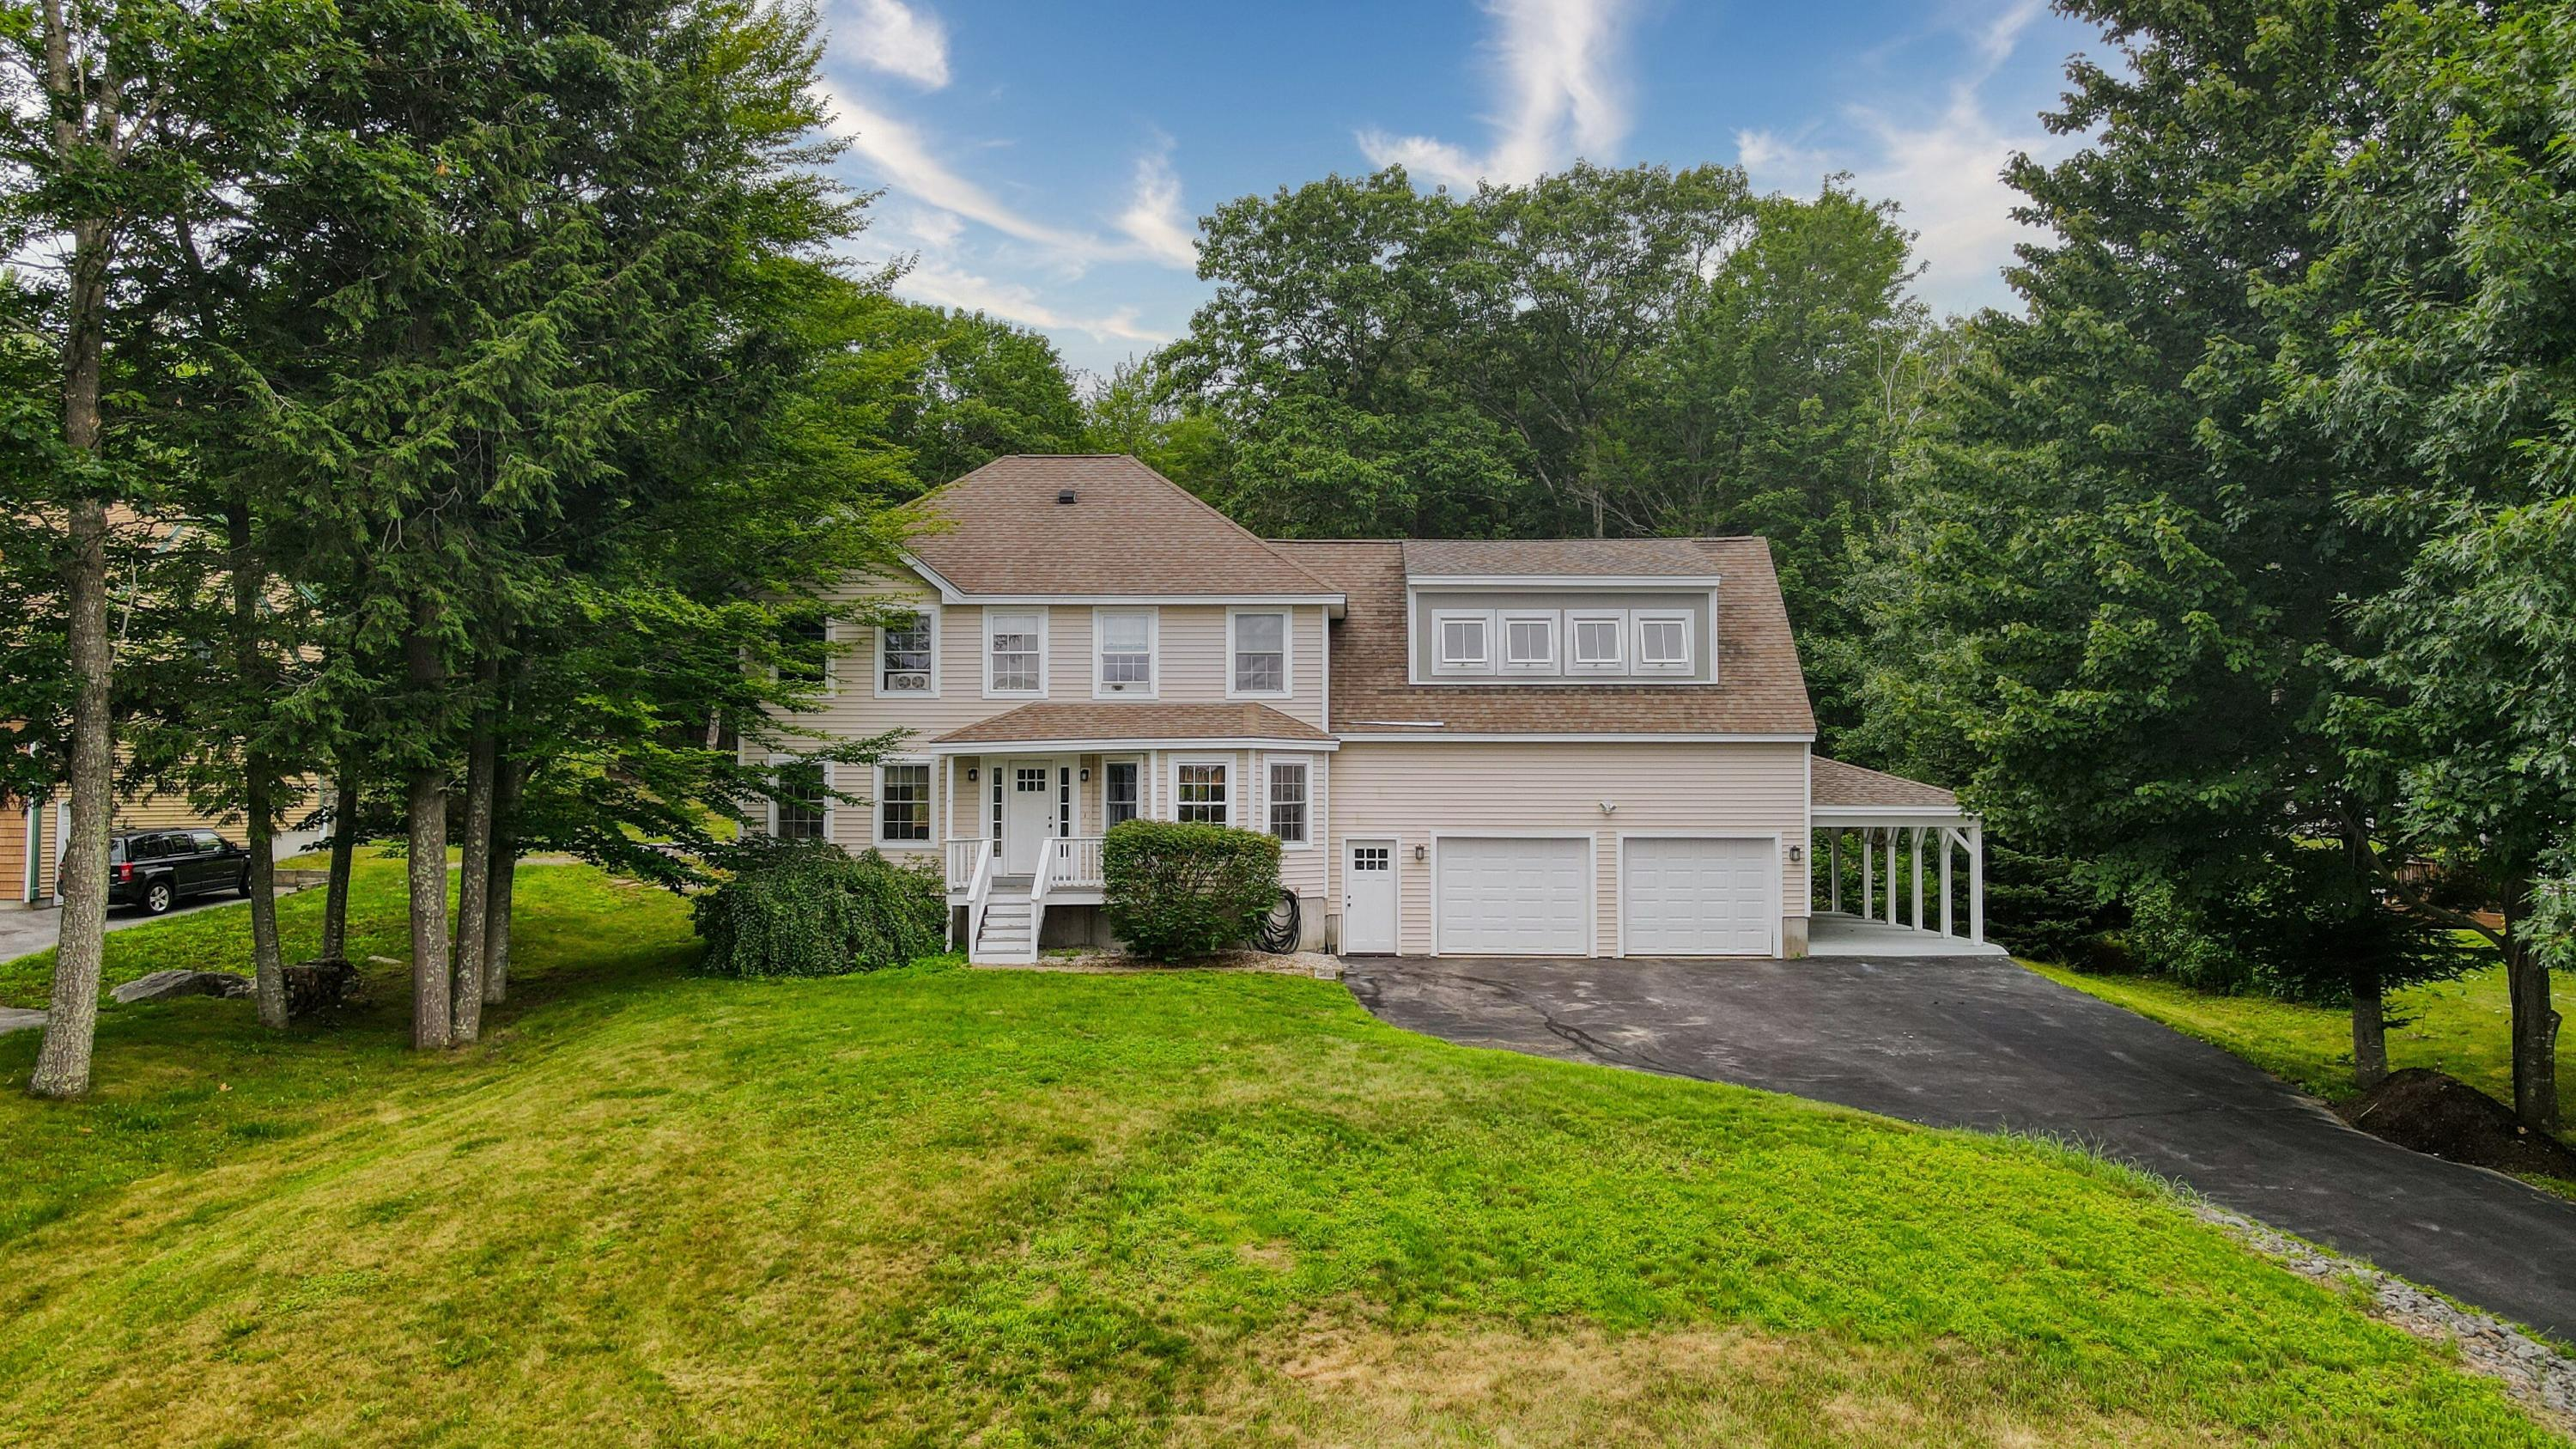 Main image for MLS listing 1501063